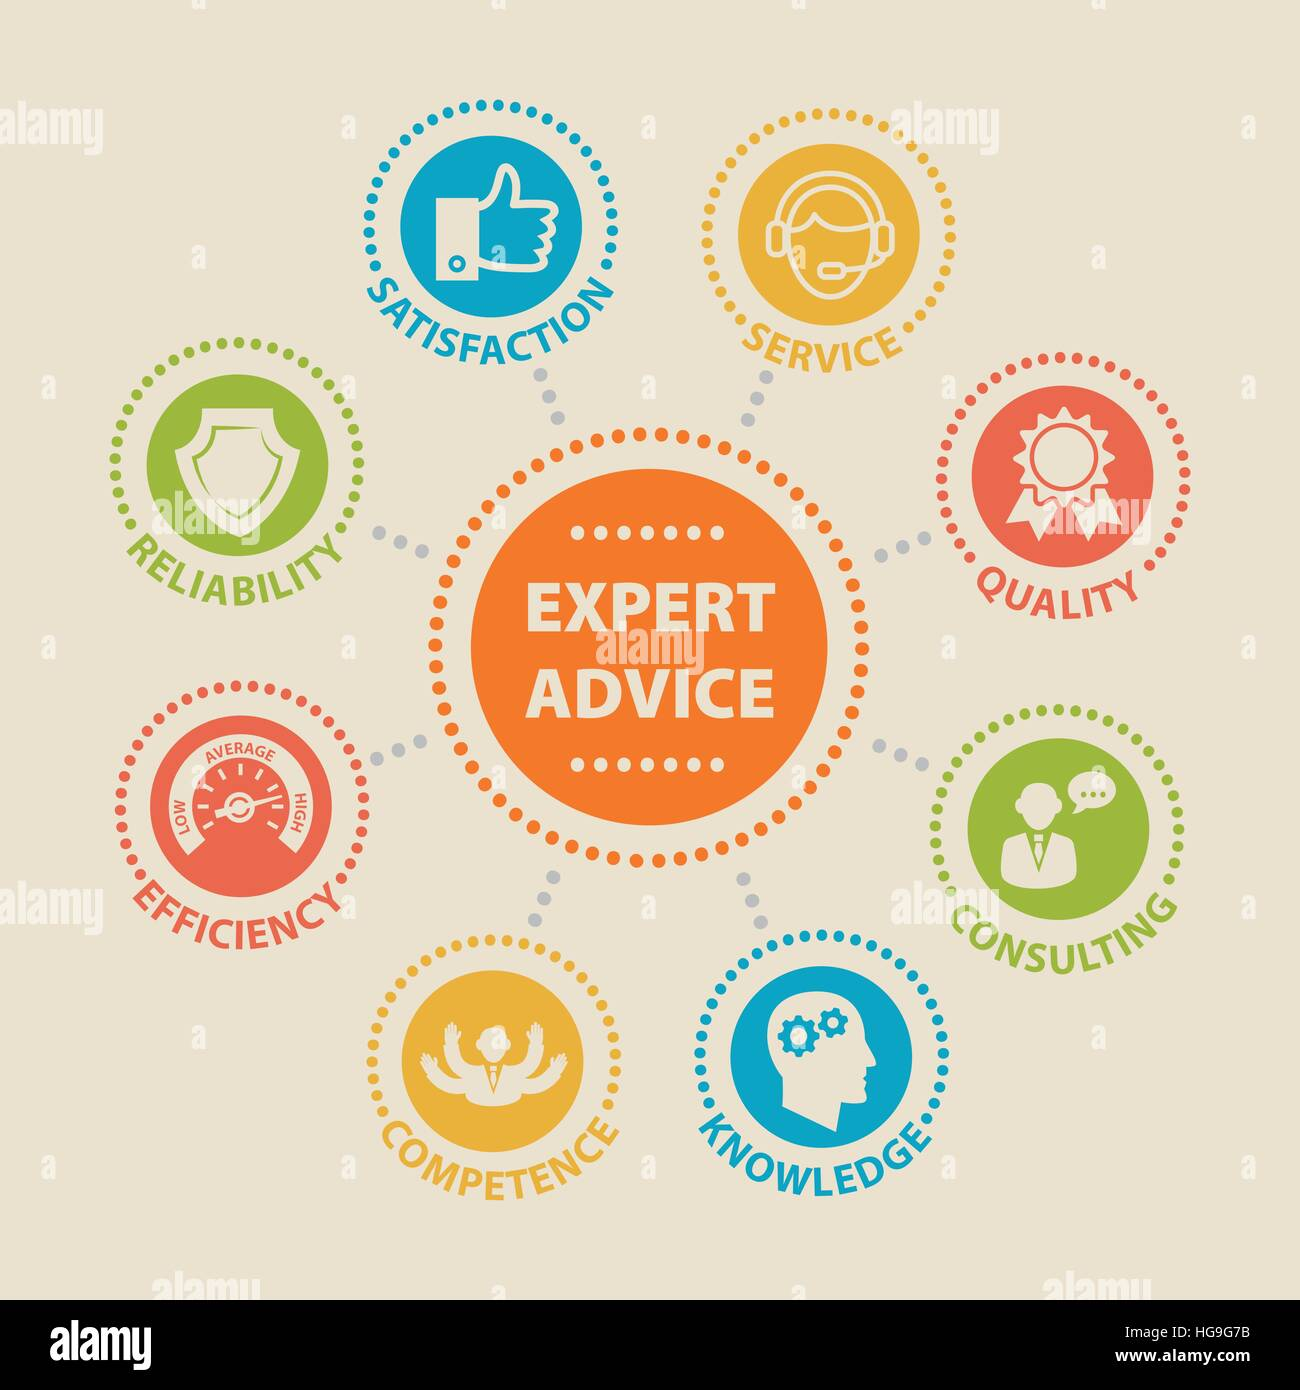 EXPERT ADVICE Concept with icons - Stock Image